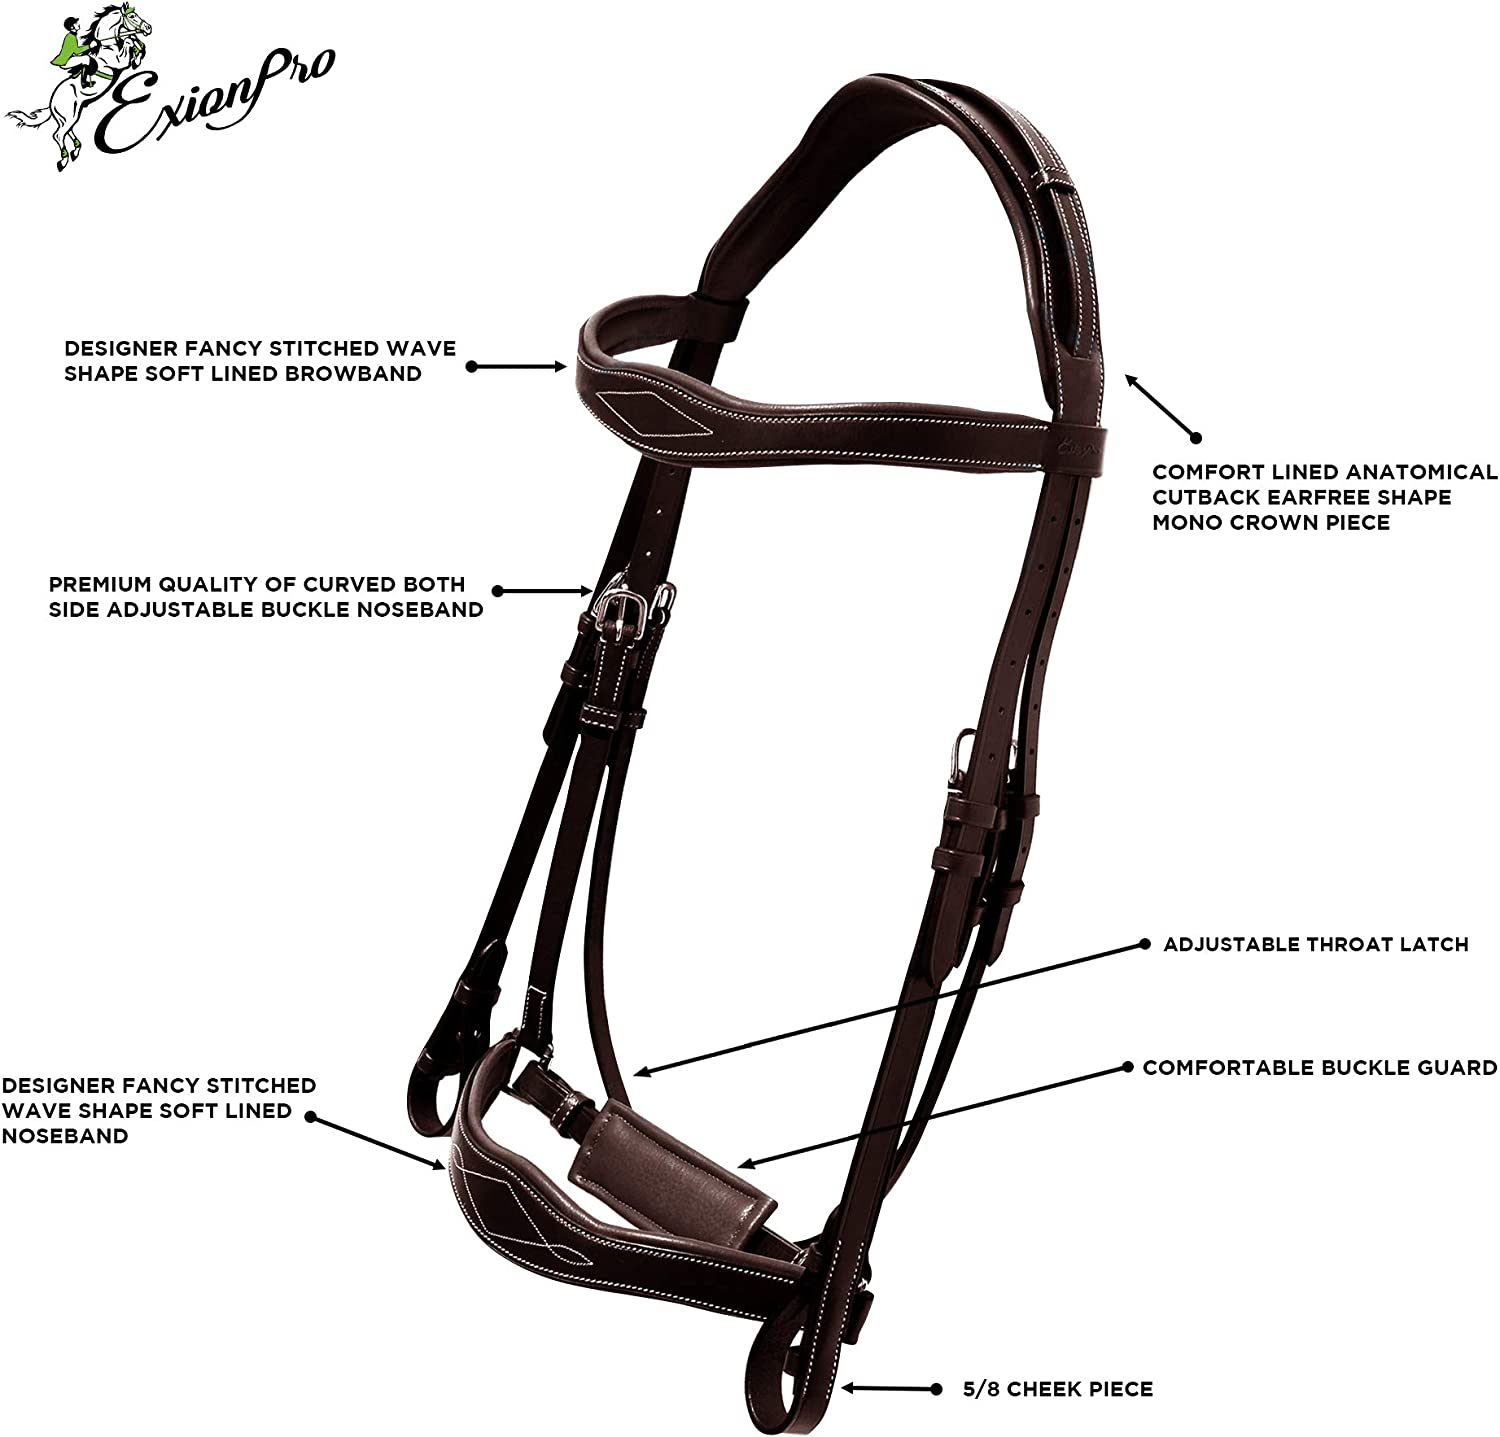 ExionPro Broad Cutback Wave Shape Mono Crownpiece Designer Fancy Stitched Wave Crank Noseband /& Browband Dressage Bridle with Web Reins /& Hand Stoppers Dressage Bridles for Horses